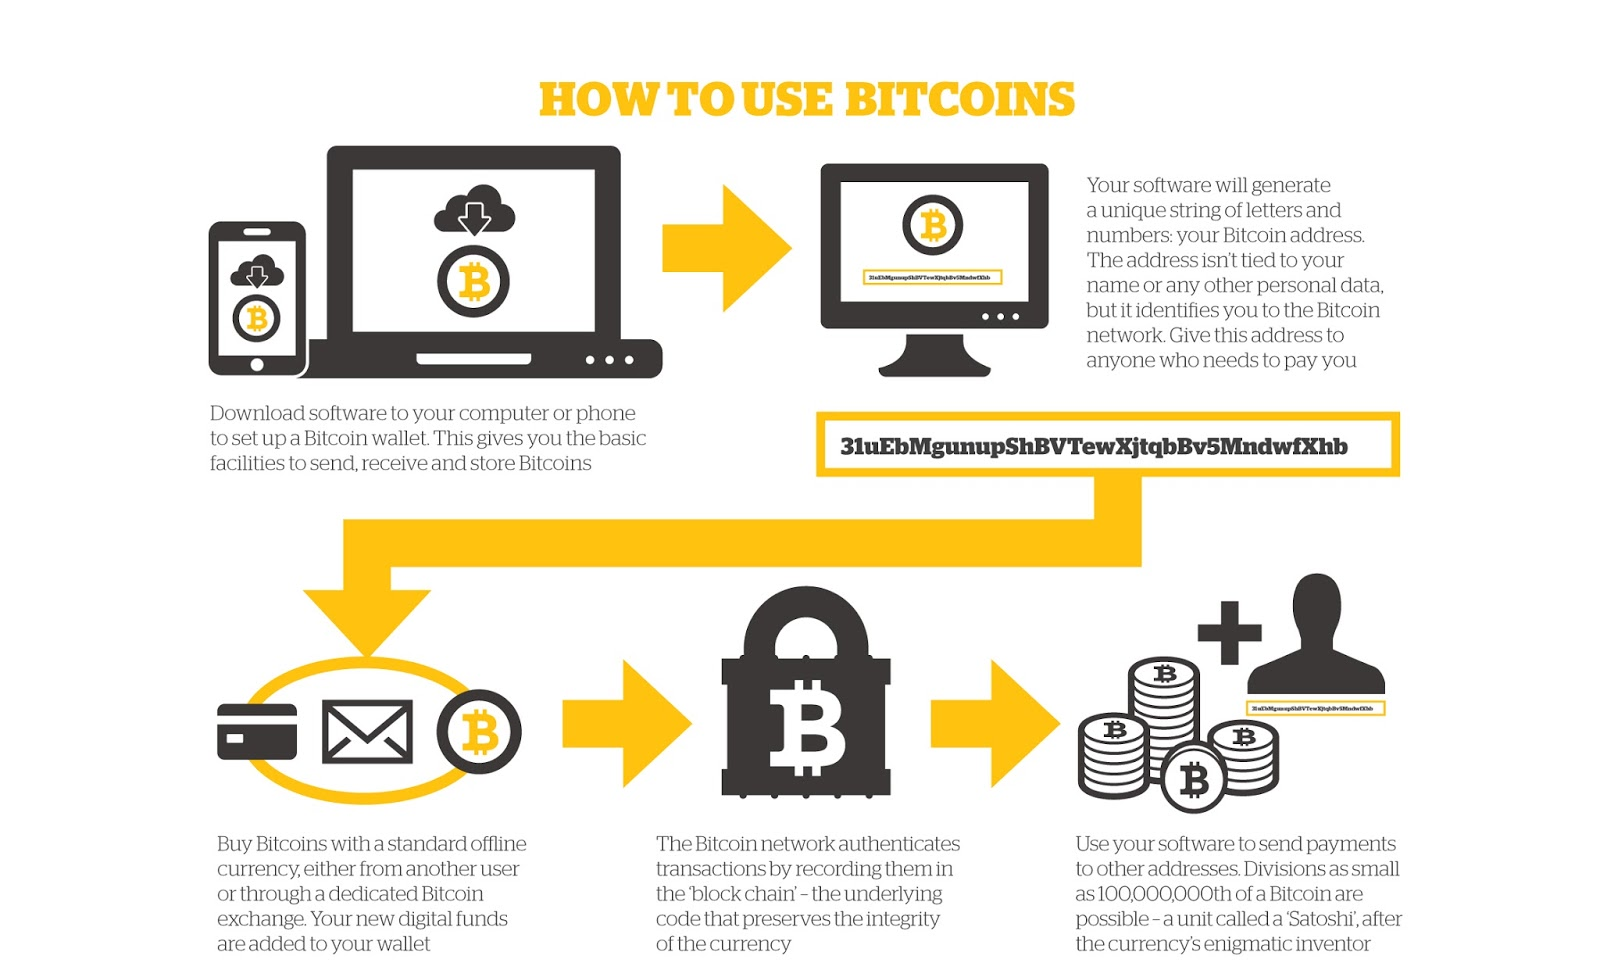 There Are Two Main Bitcoin Uses